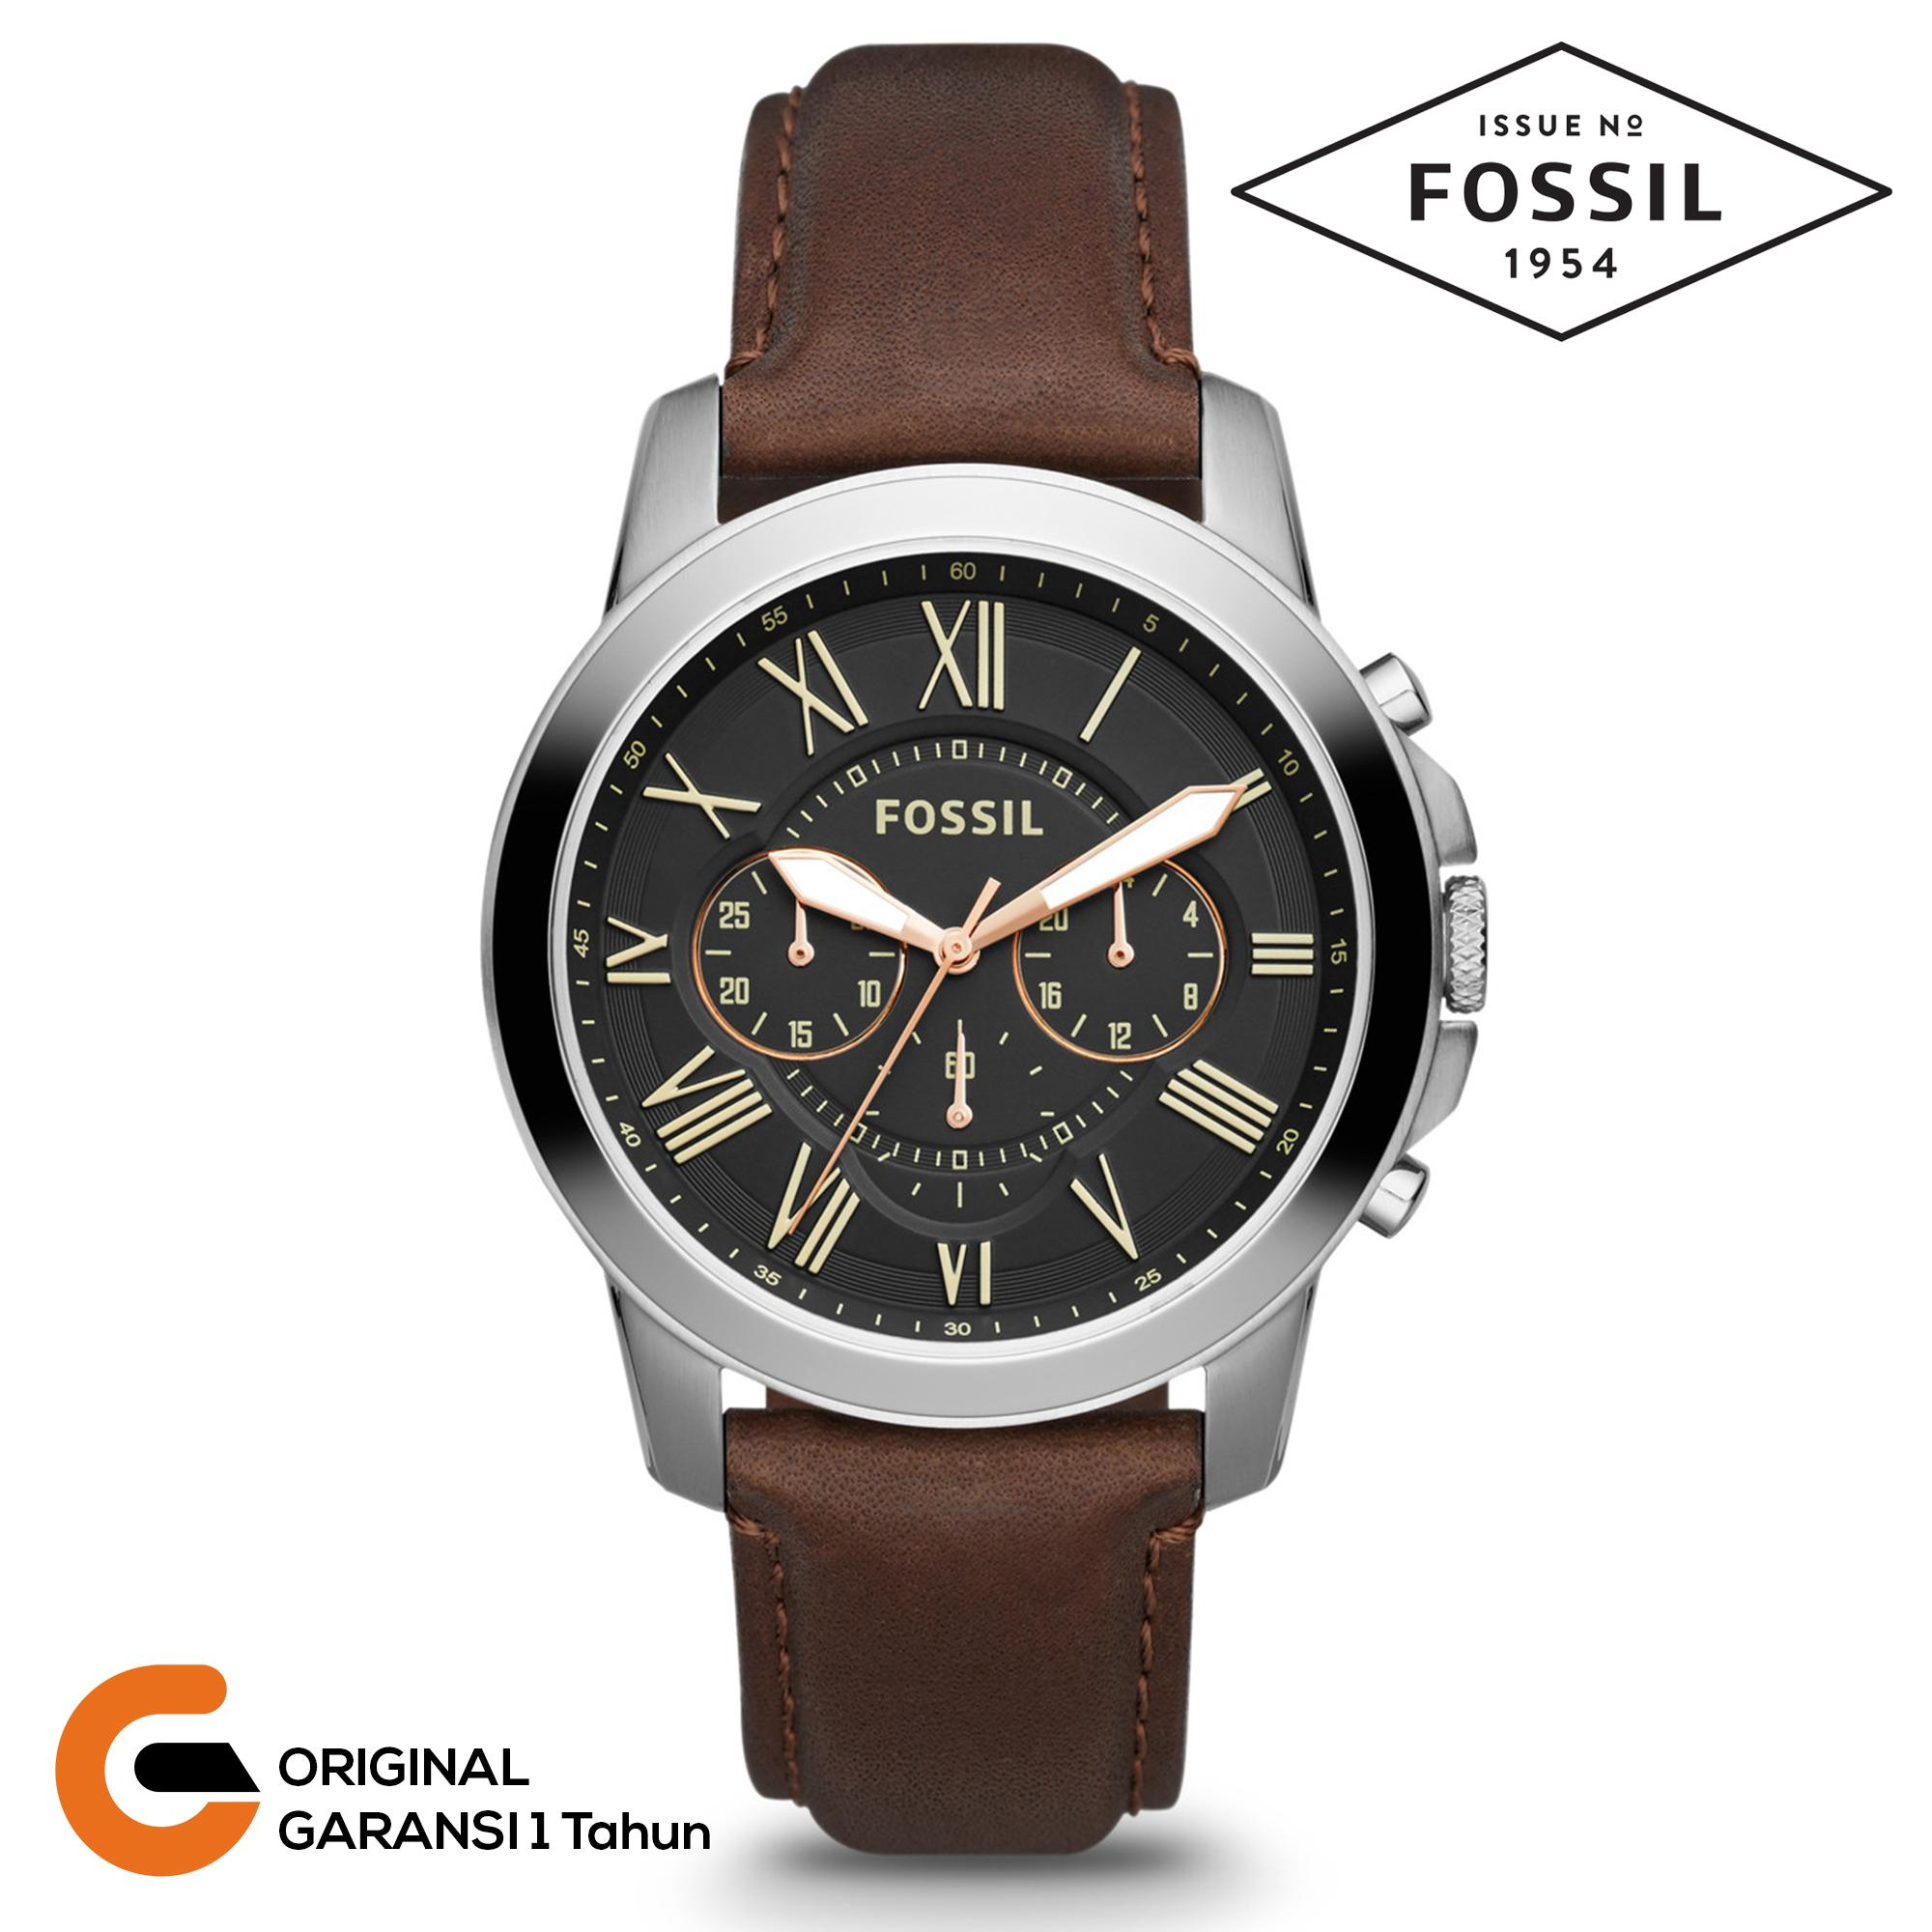 Fossil Jam Tangan Pria Fossil Grant Chronograph Tali Kulit Leather Quartz  Movement Black White Coklat Hitam c33a36b479